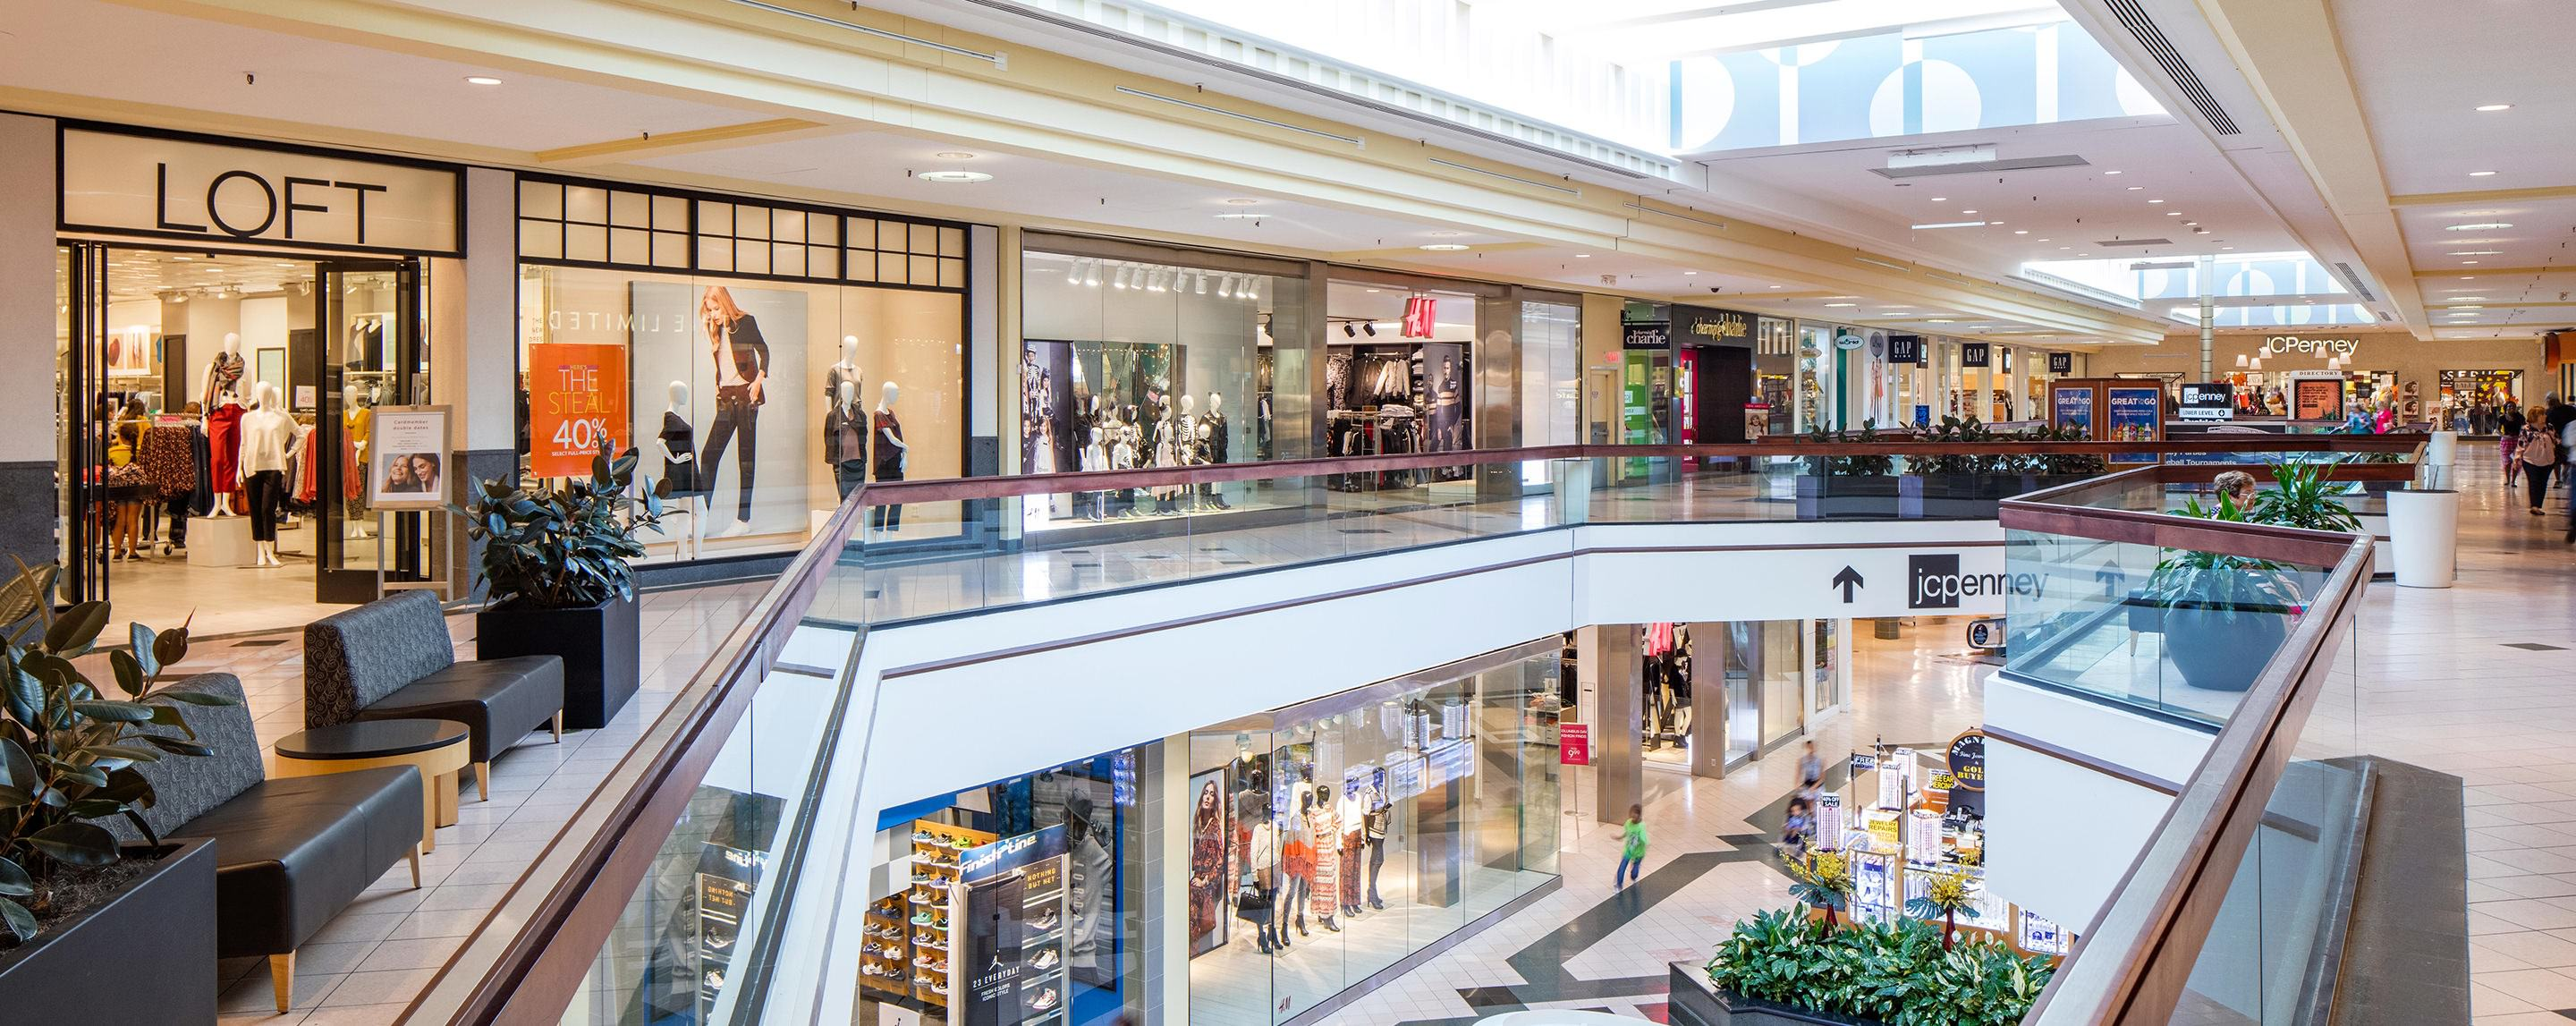 The upstairs walkway in Altamonte Mall gives you an open view of store fronts and seating areas for shoppers.